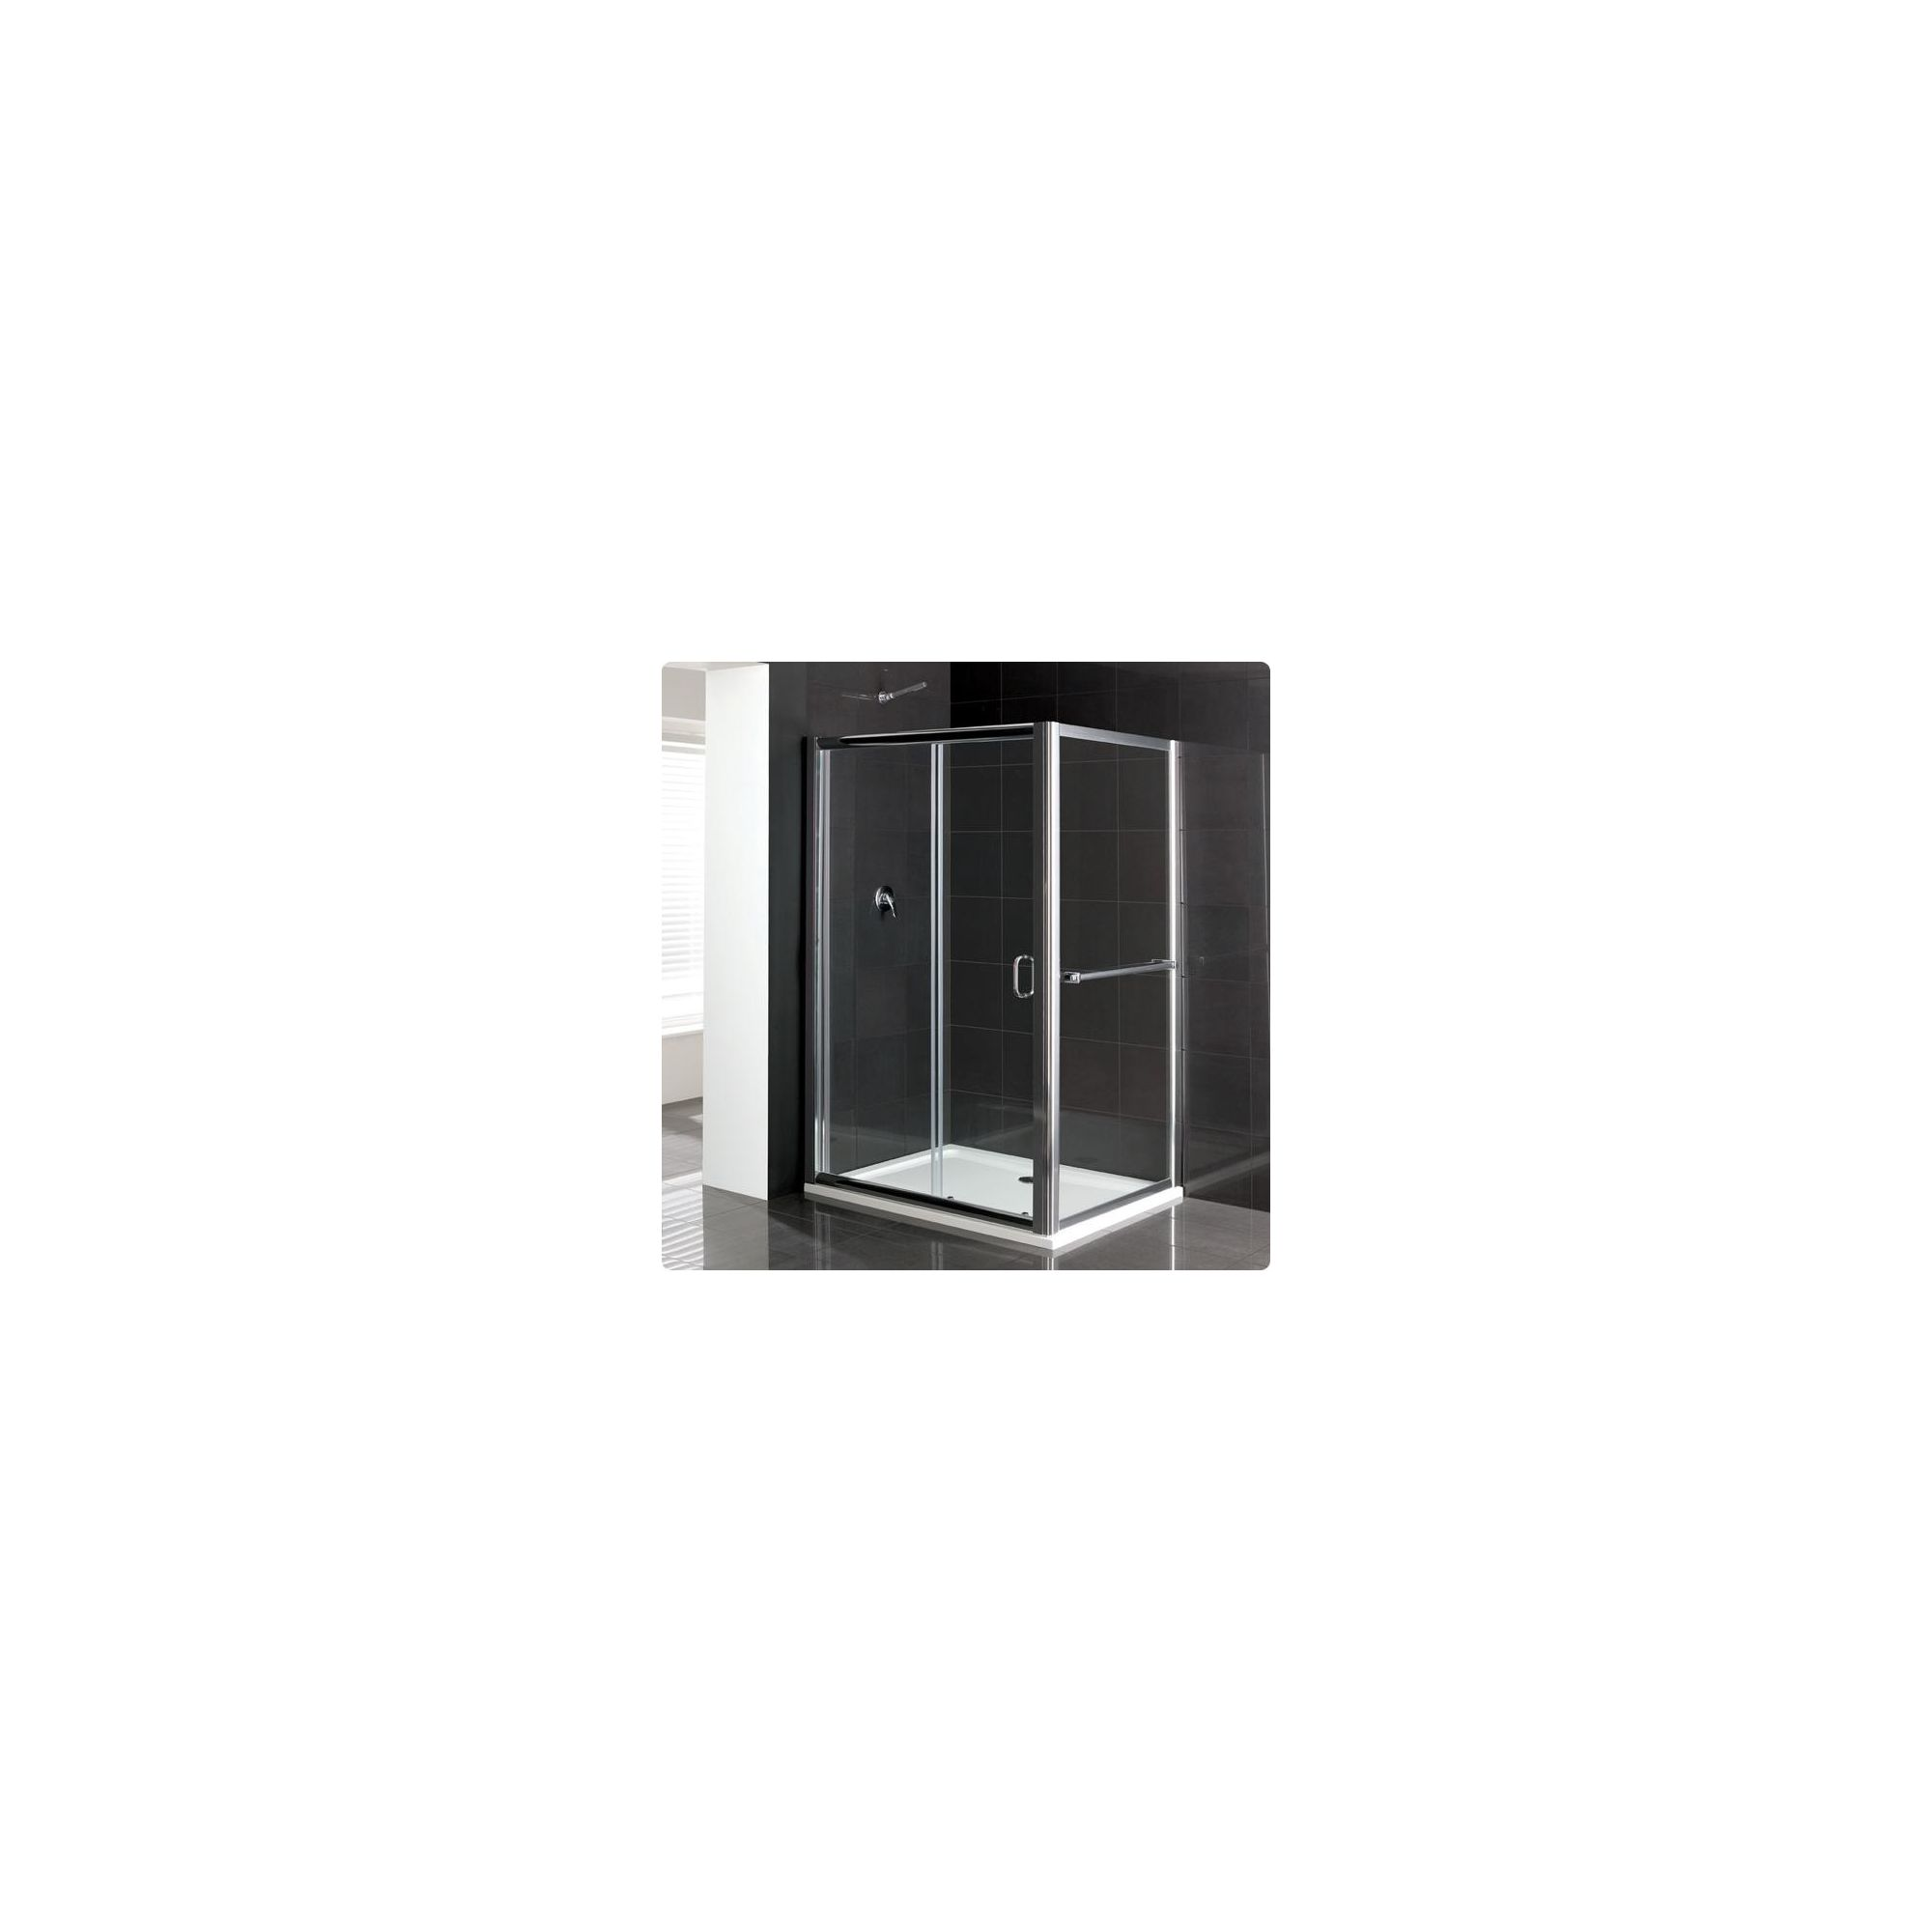 Duchy Elite Silver Sliding Door Shower Enclosure, 1700mm x 700mm, Standard Tray, 6mm Glass at Tesco Direct